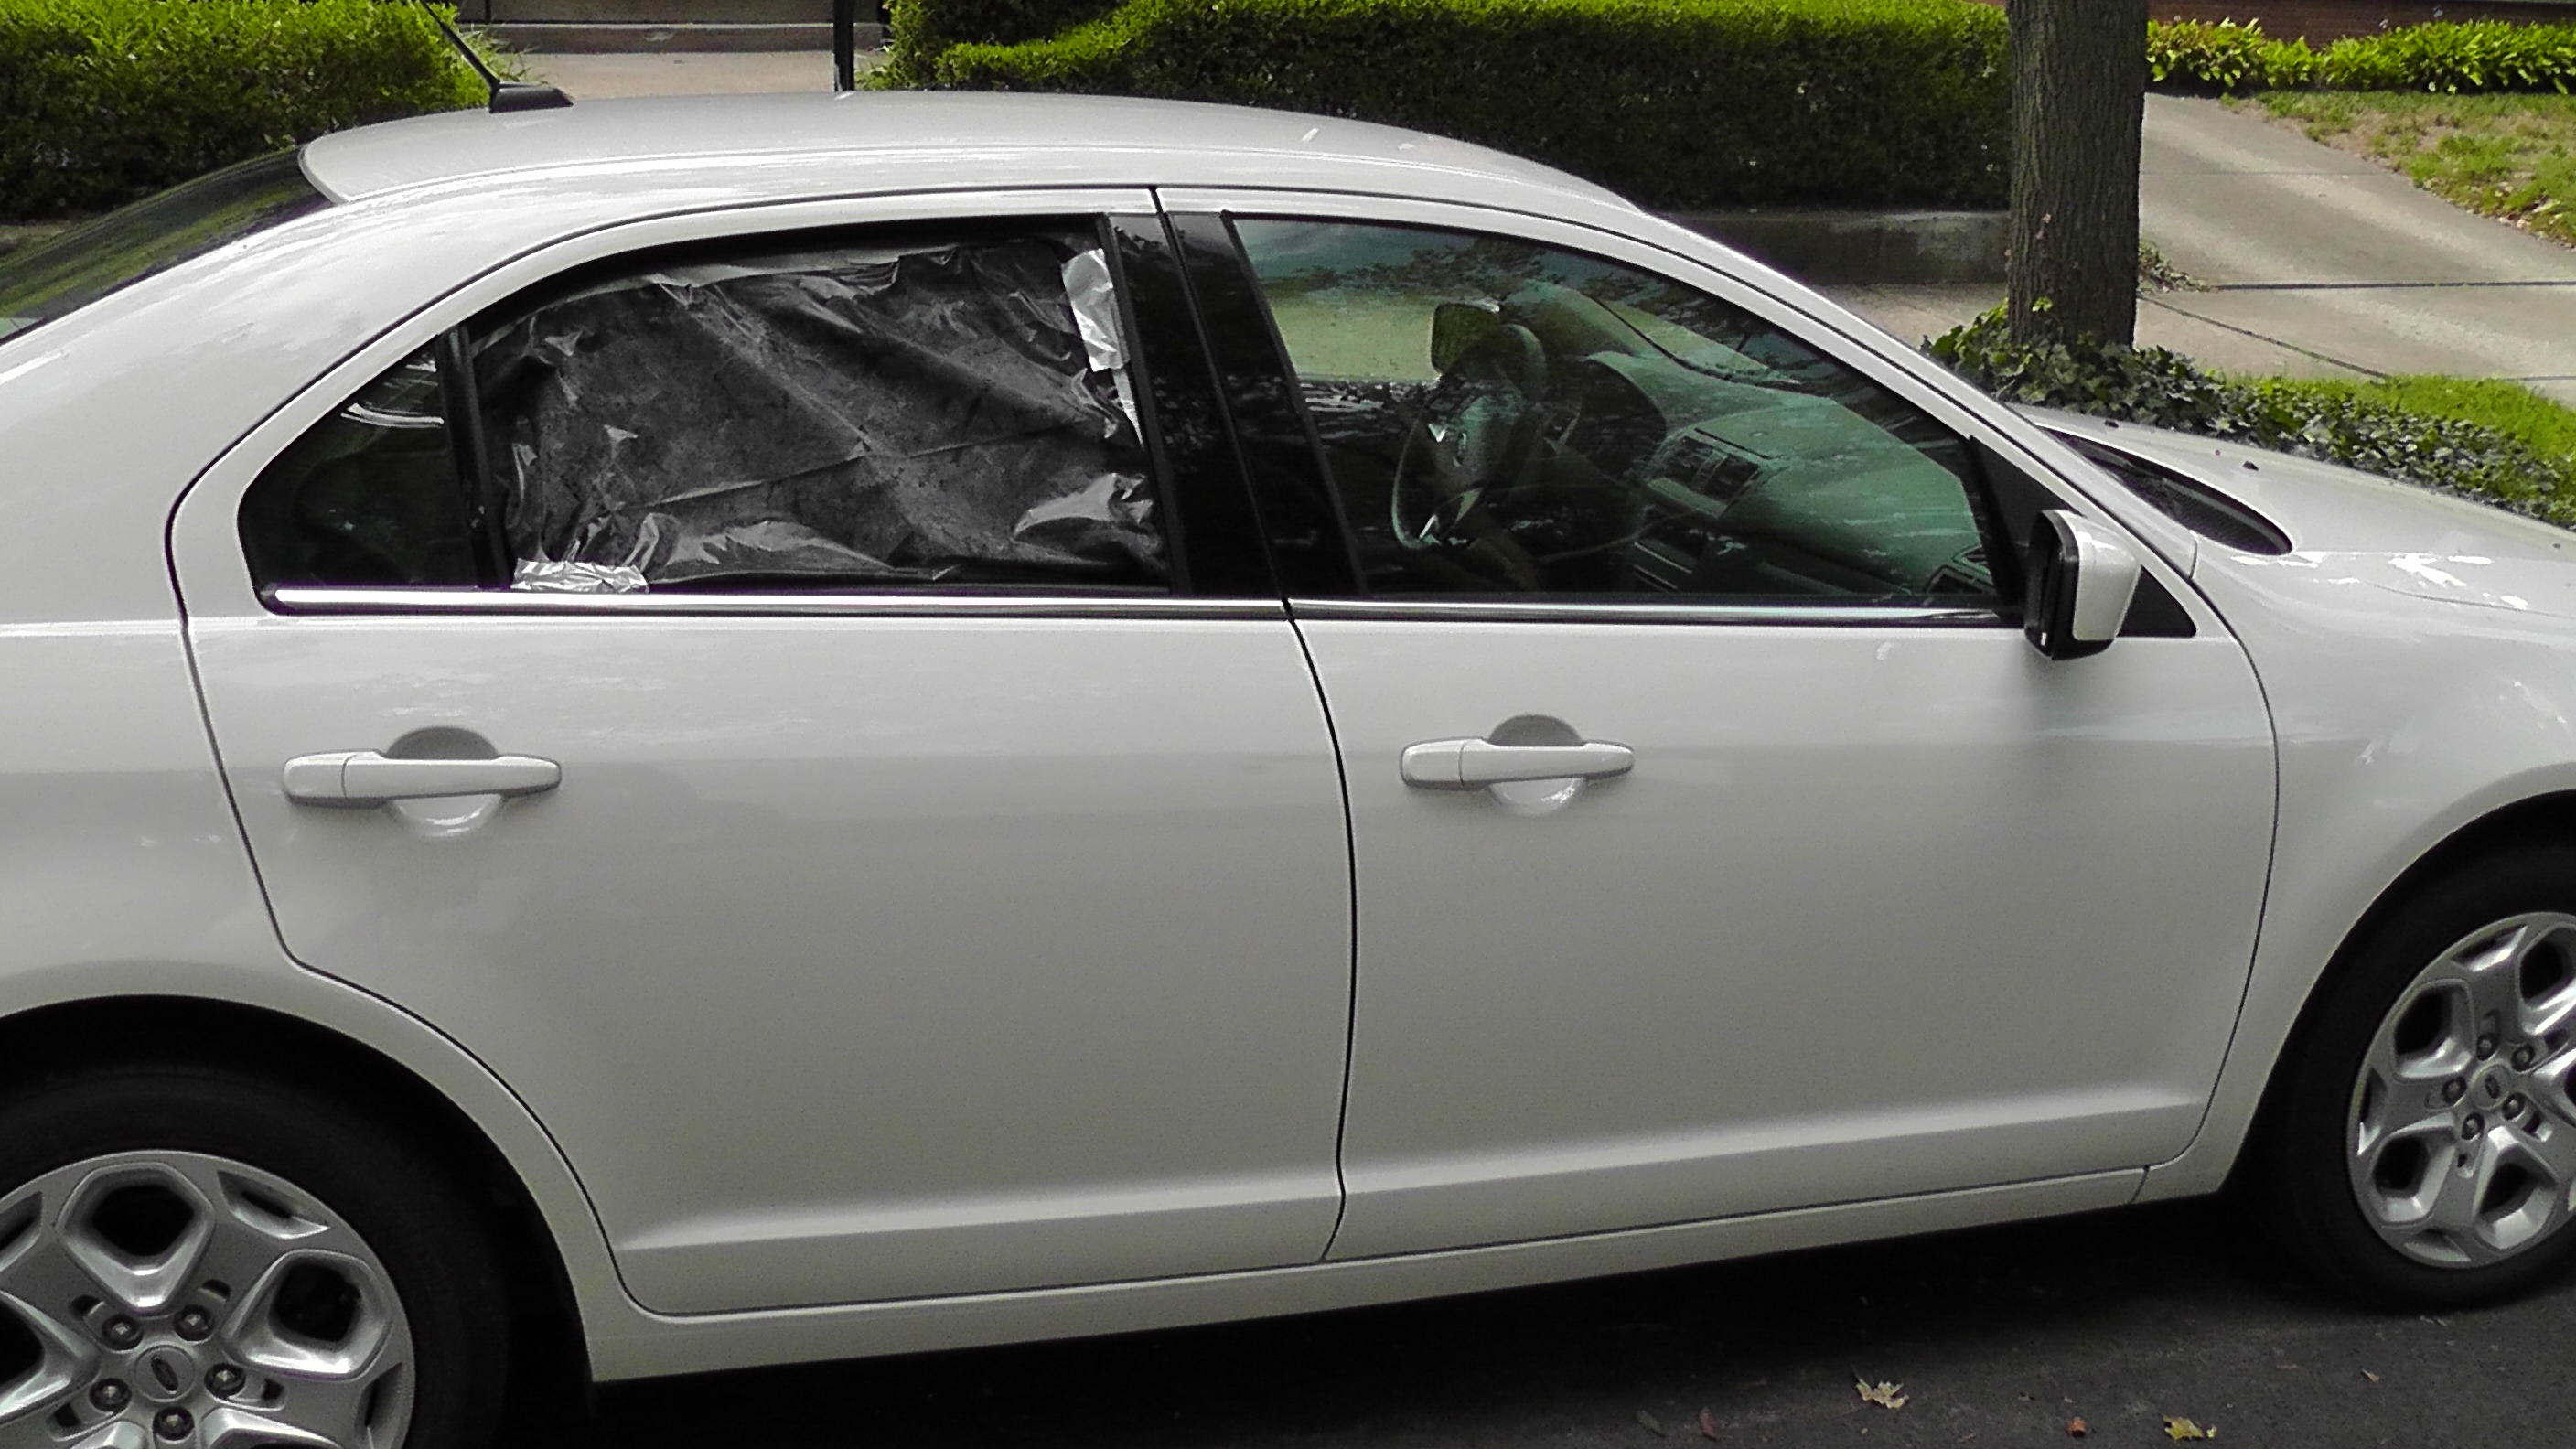 A Black Garbage Bag Is Substitute Windowing For My Car Until Tomorrow Morning When The Glass Repair Men Come Maybe I Should Put Over